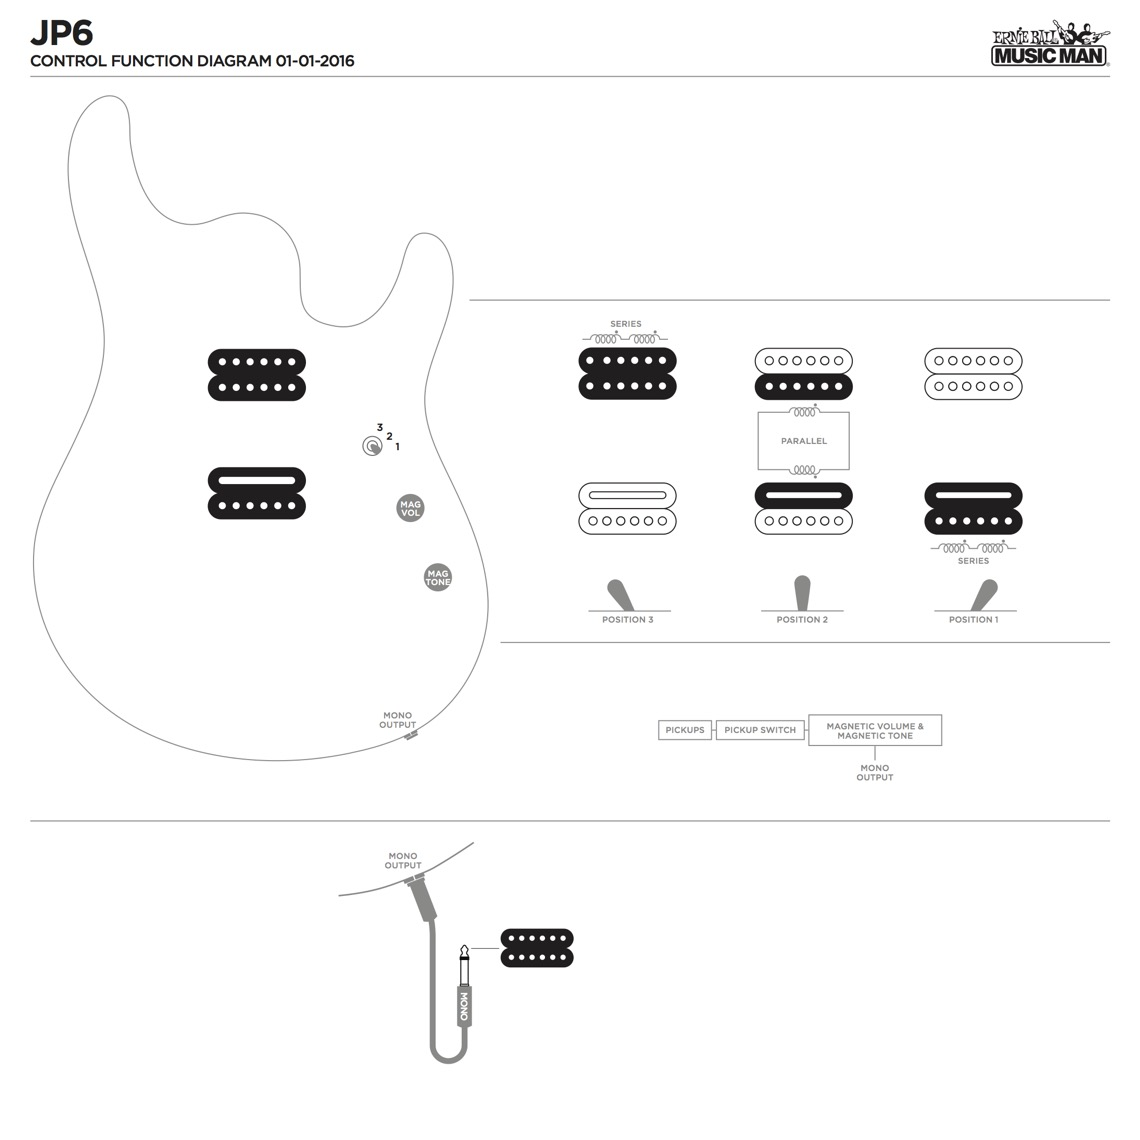 John Petrucci 6 Guitars Ernie Ball Music Man Code 3 Light Bar Wiring Diagram Pickup Configuration 1